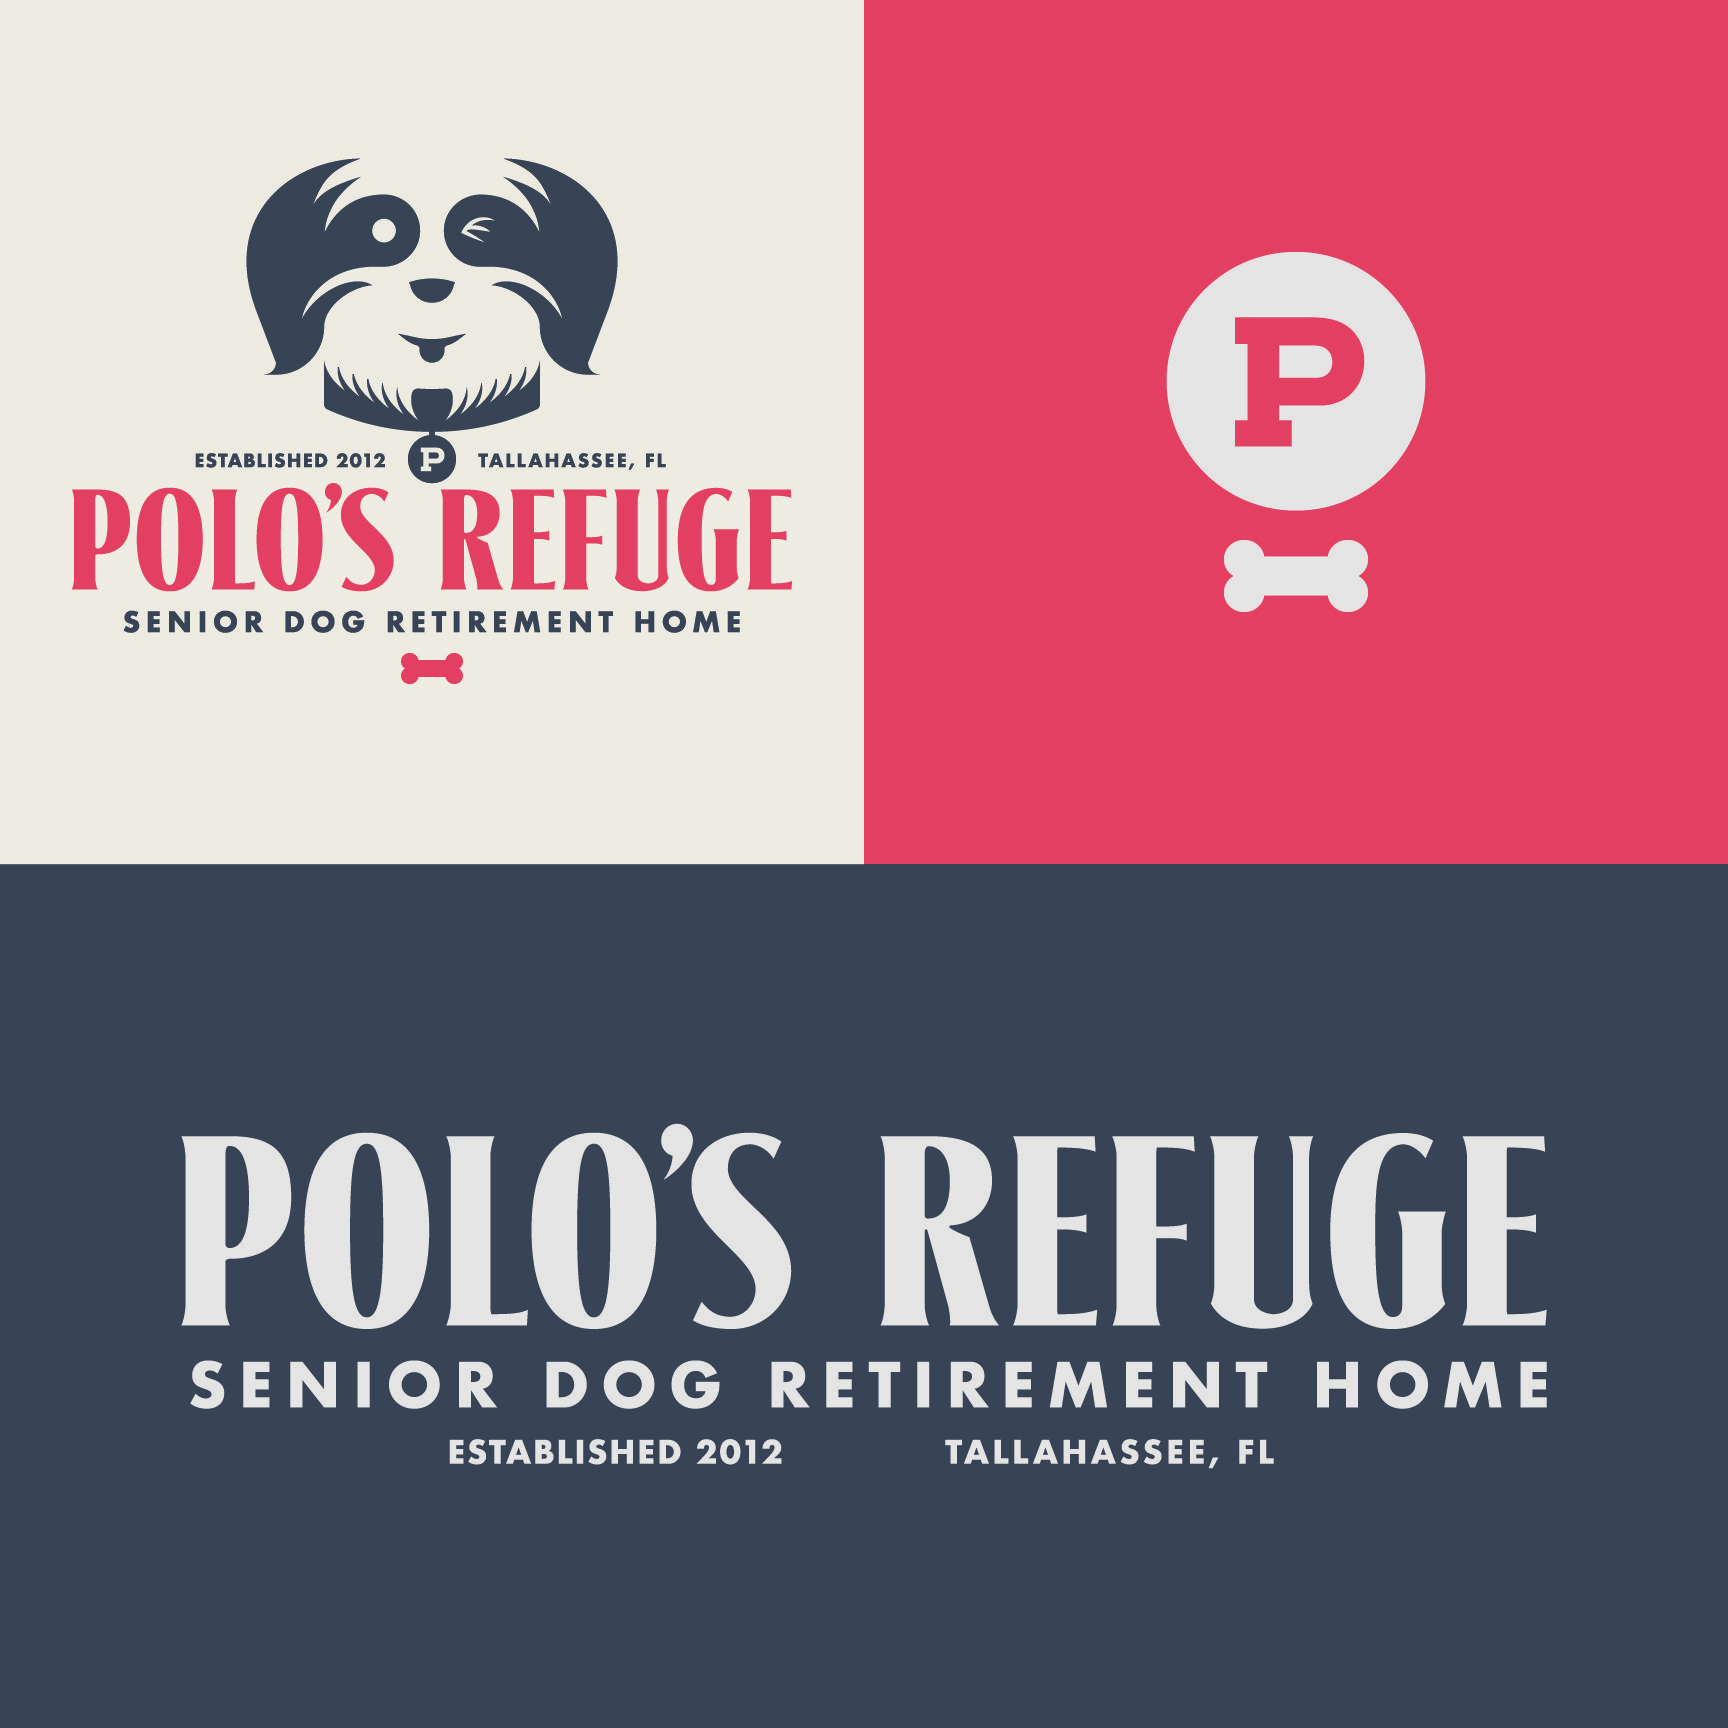 Polo's Refuge Logo and Identity Design By Design Cypher